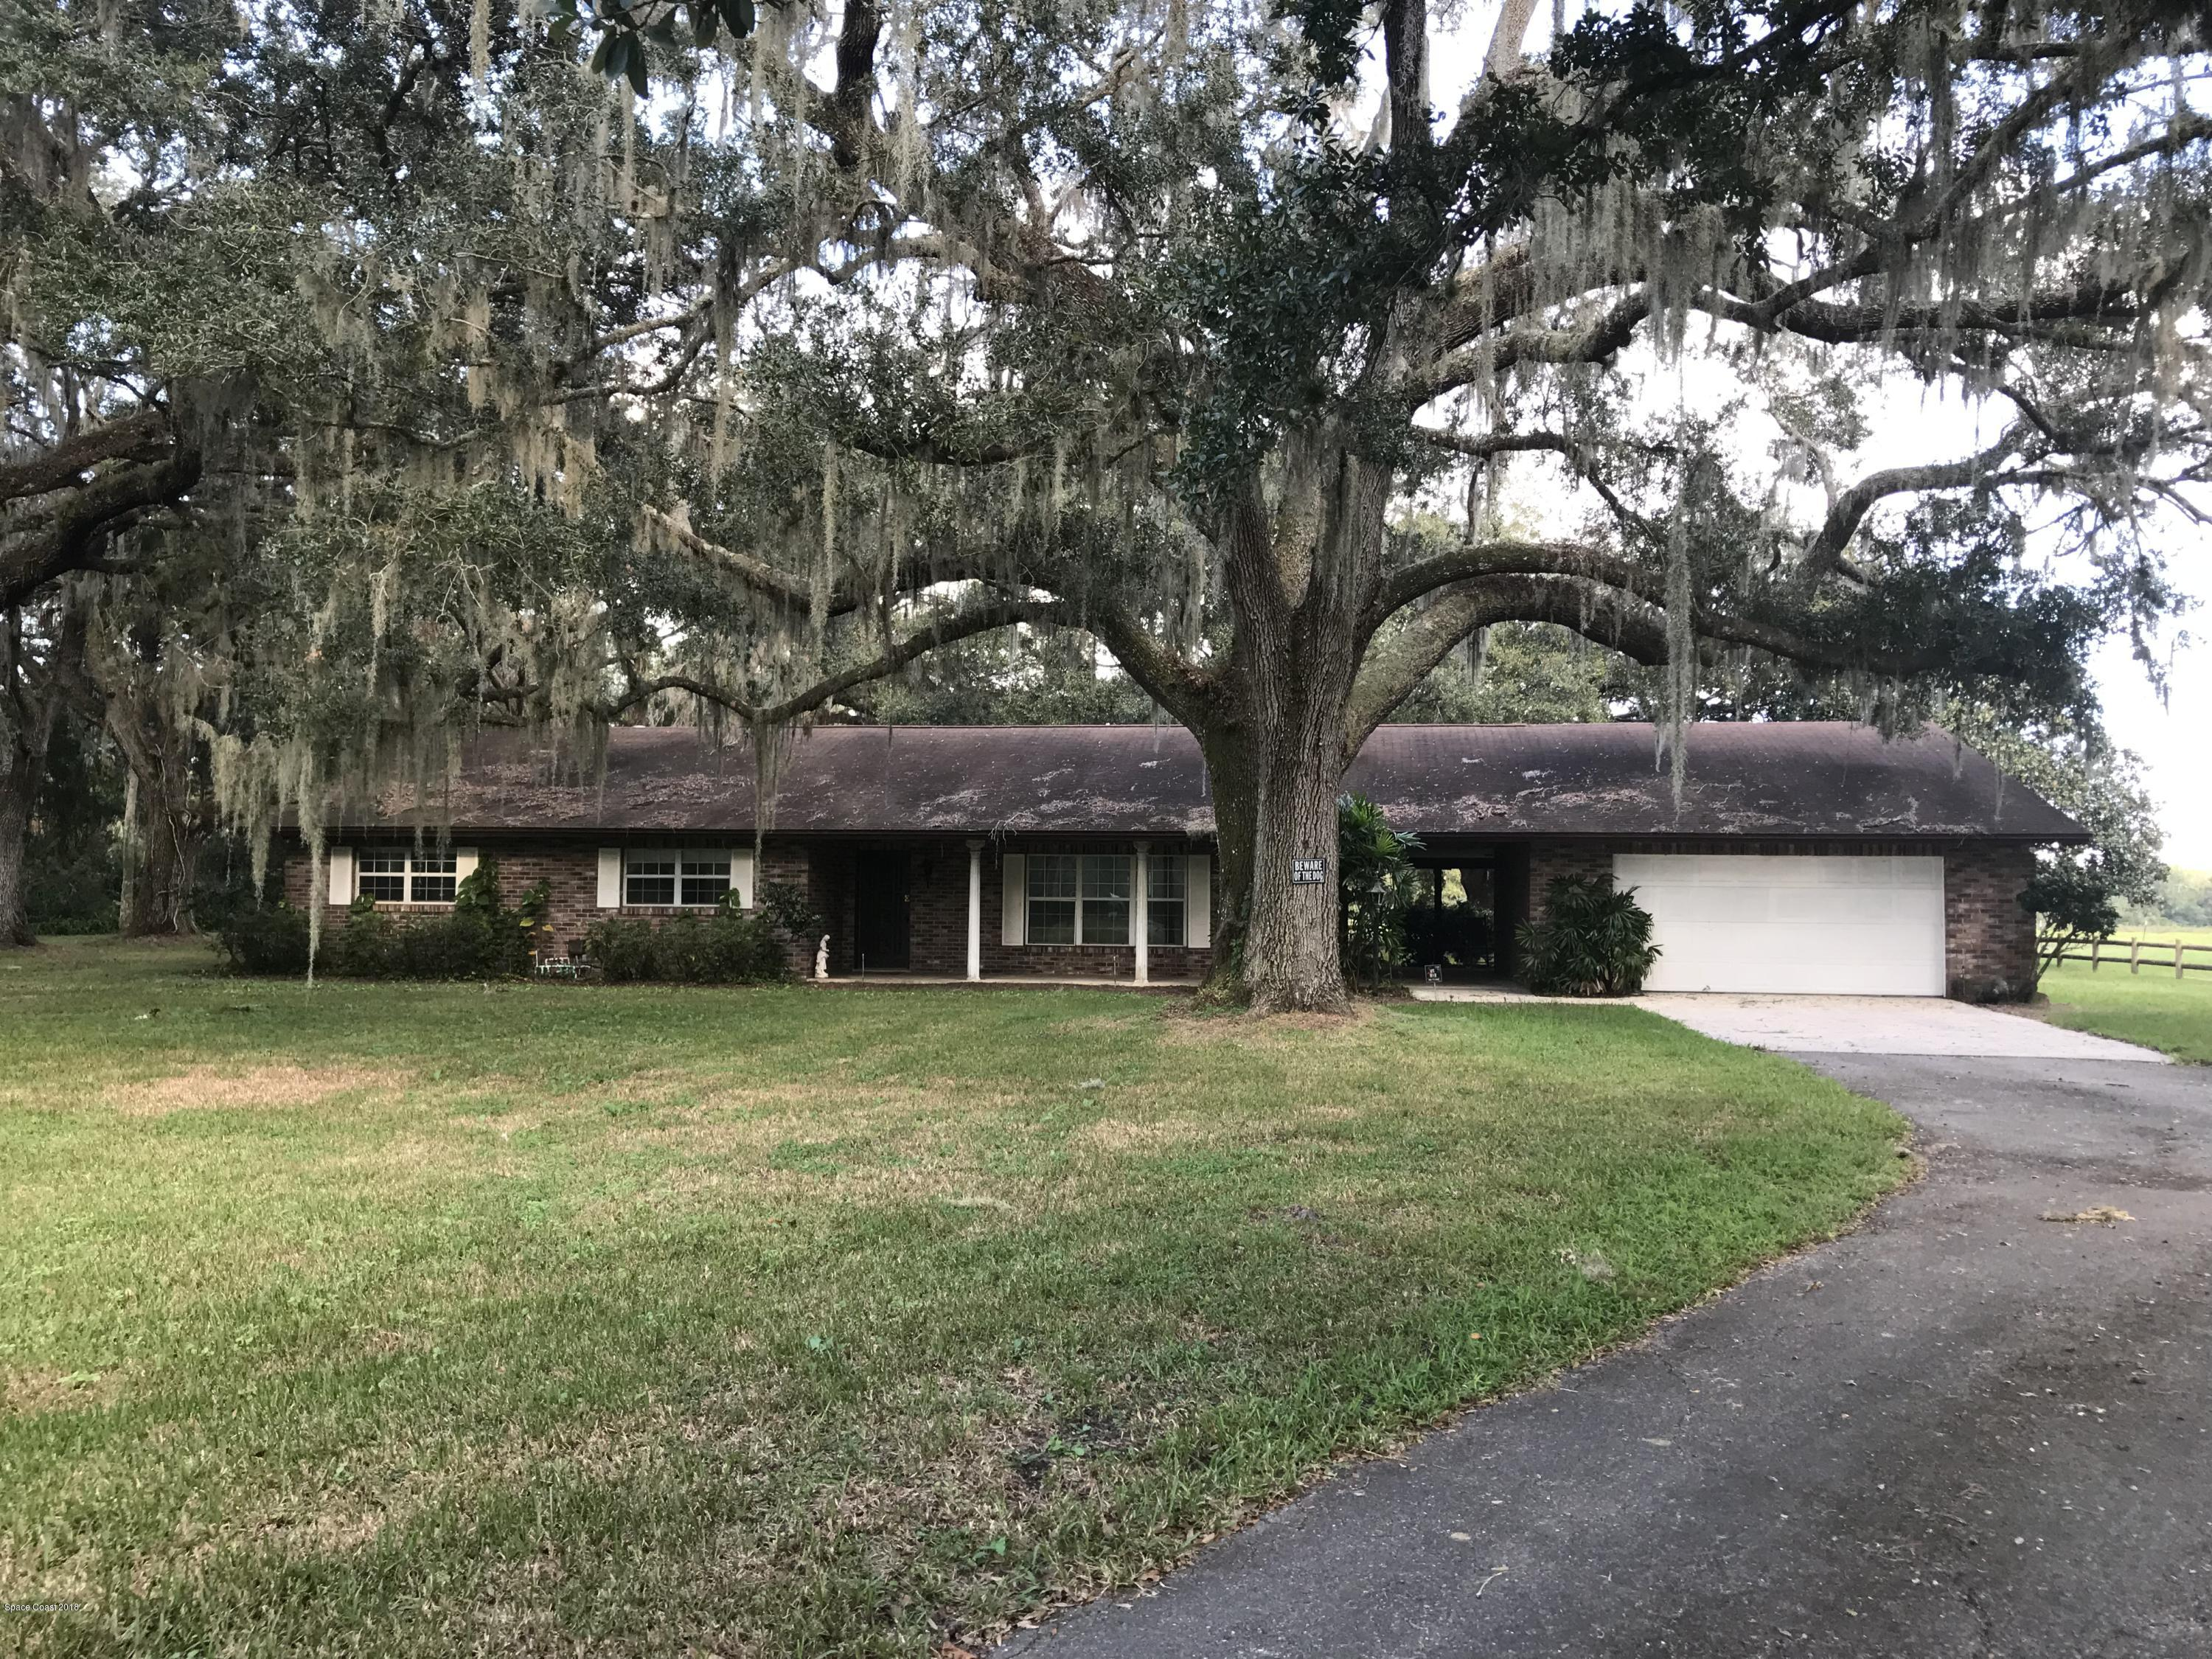 Single Family Home for Sale at 775 N Fort Christmas 775 N Fort Christmas Christmas, Florida 32709 United States